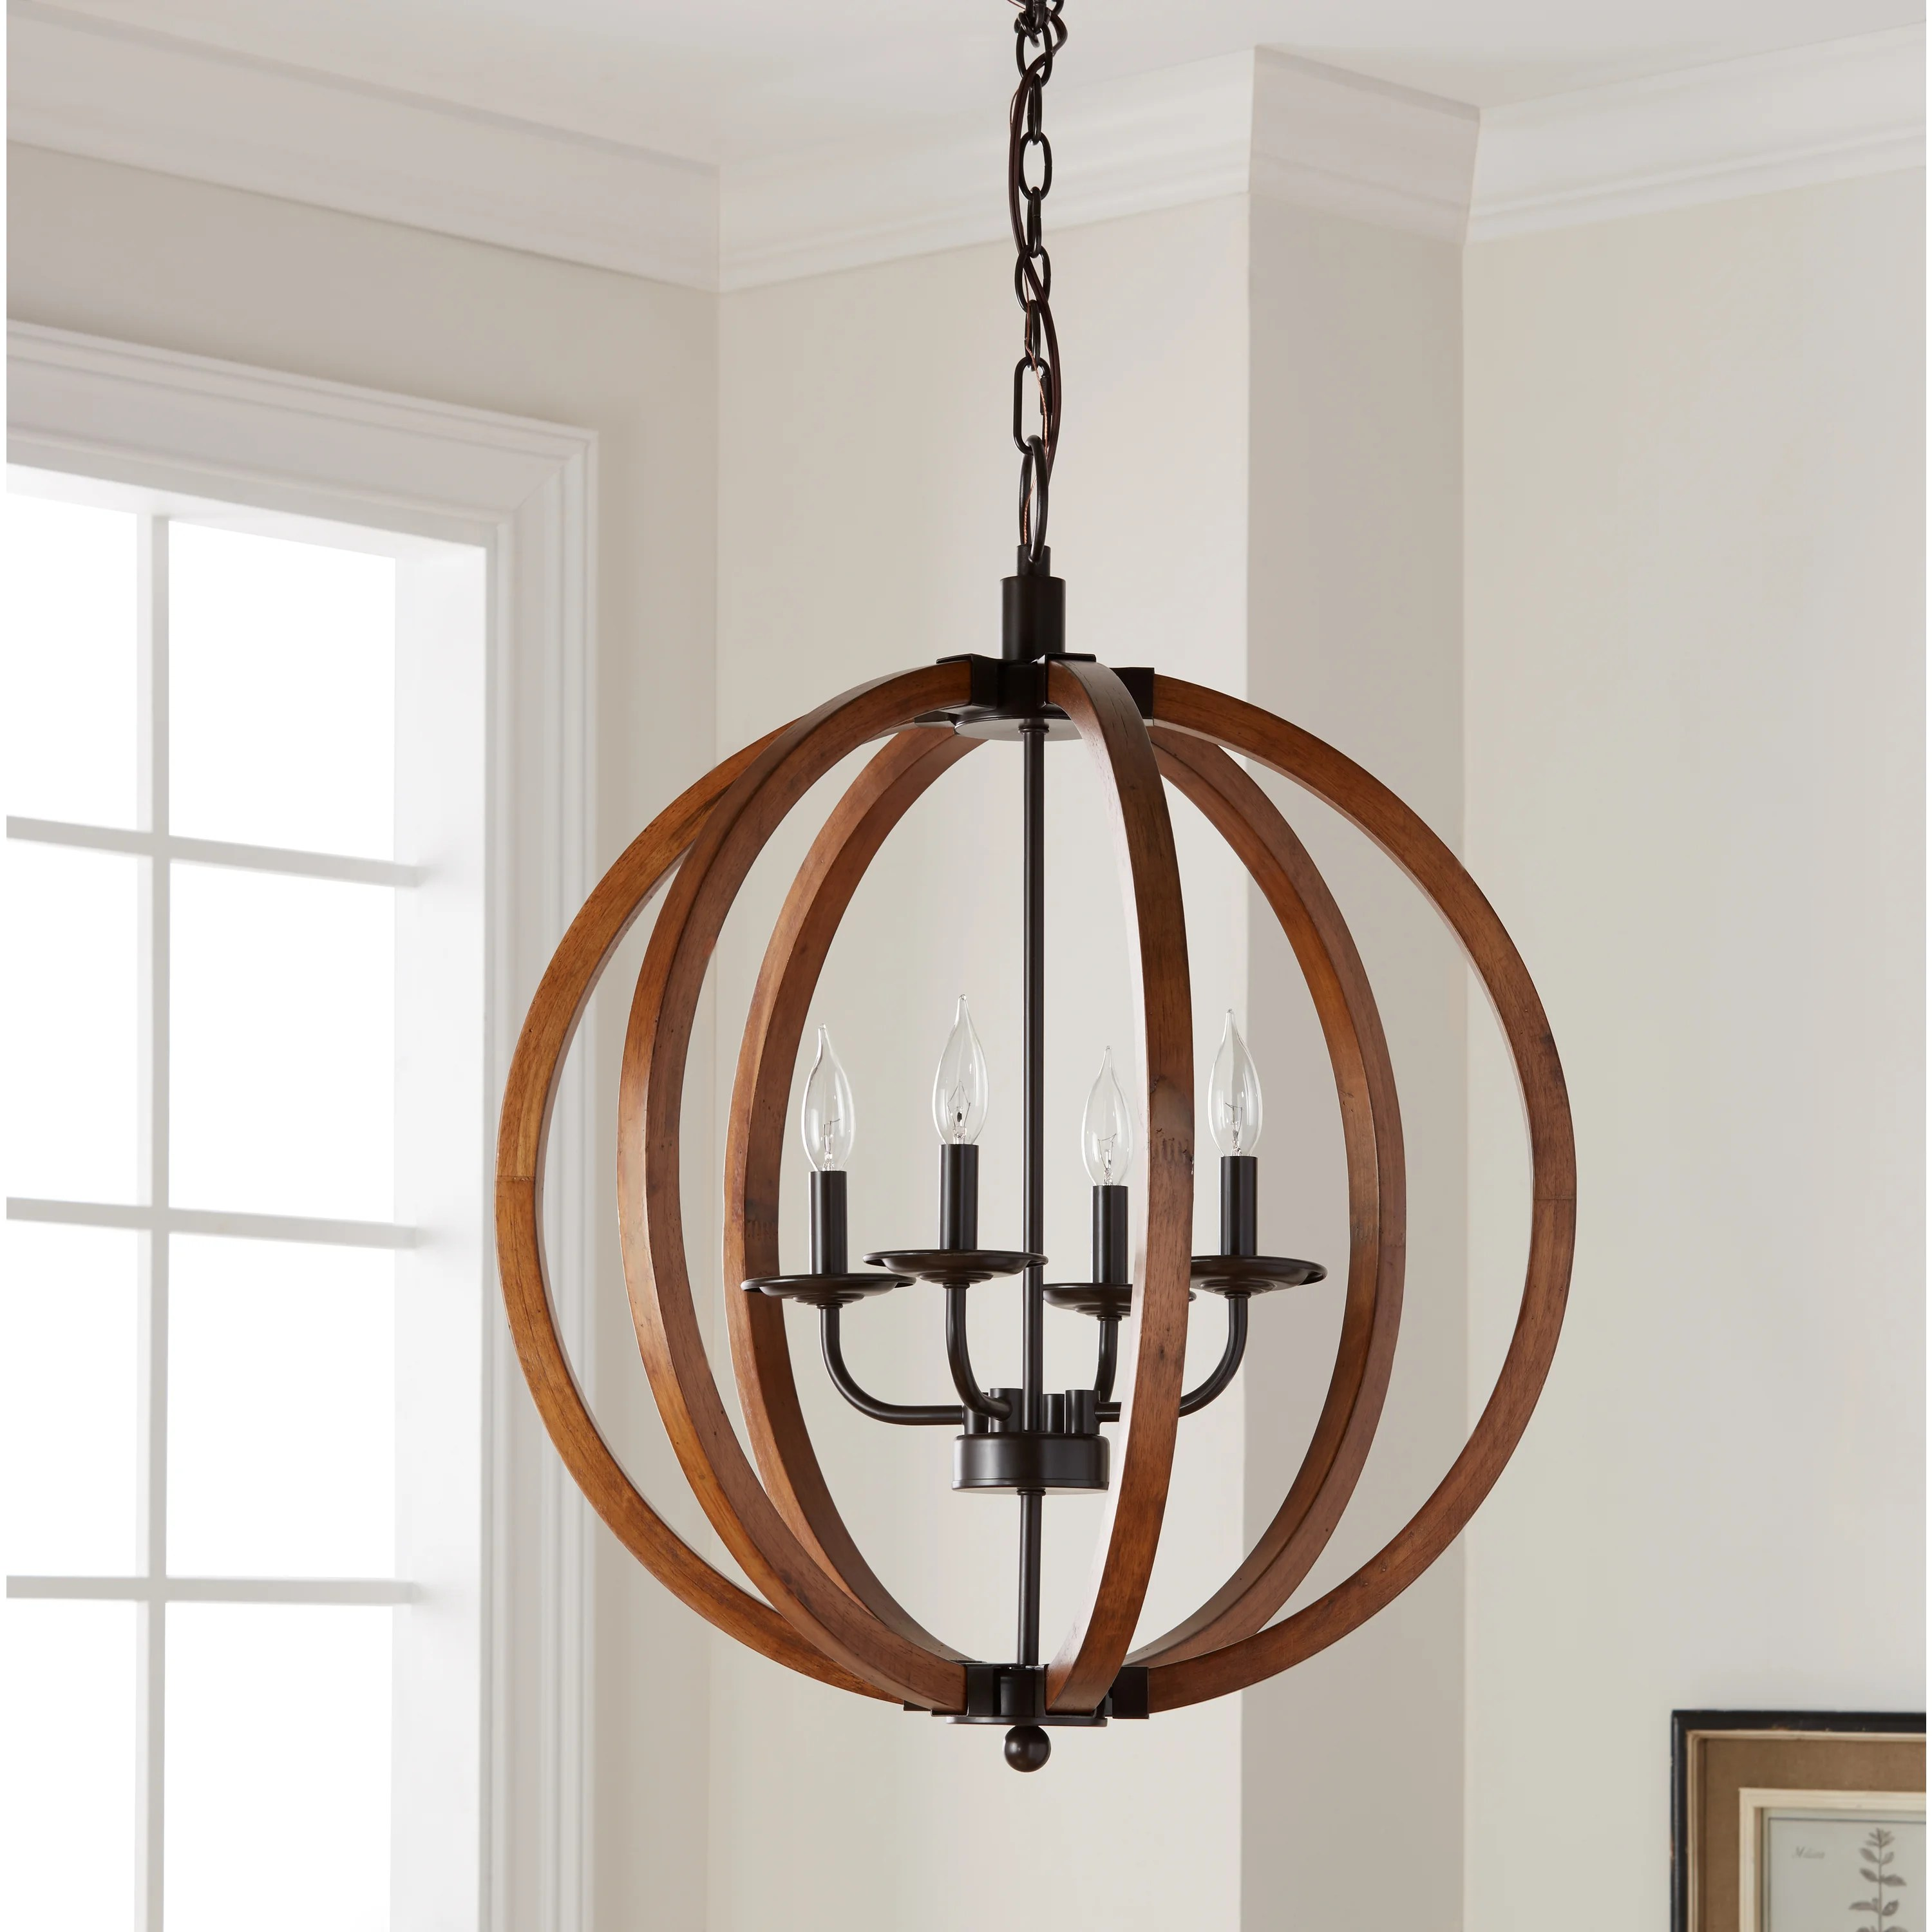 Home Decor   Clearance   Liquidation   Shop our Best Home Goods     Clearance  The Gray Barn Vineyard Distressed Mahogany and Bronze 4 light  Orb Chandelier